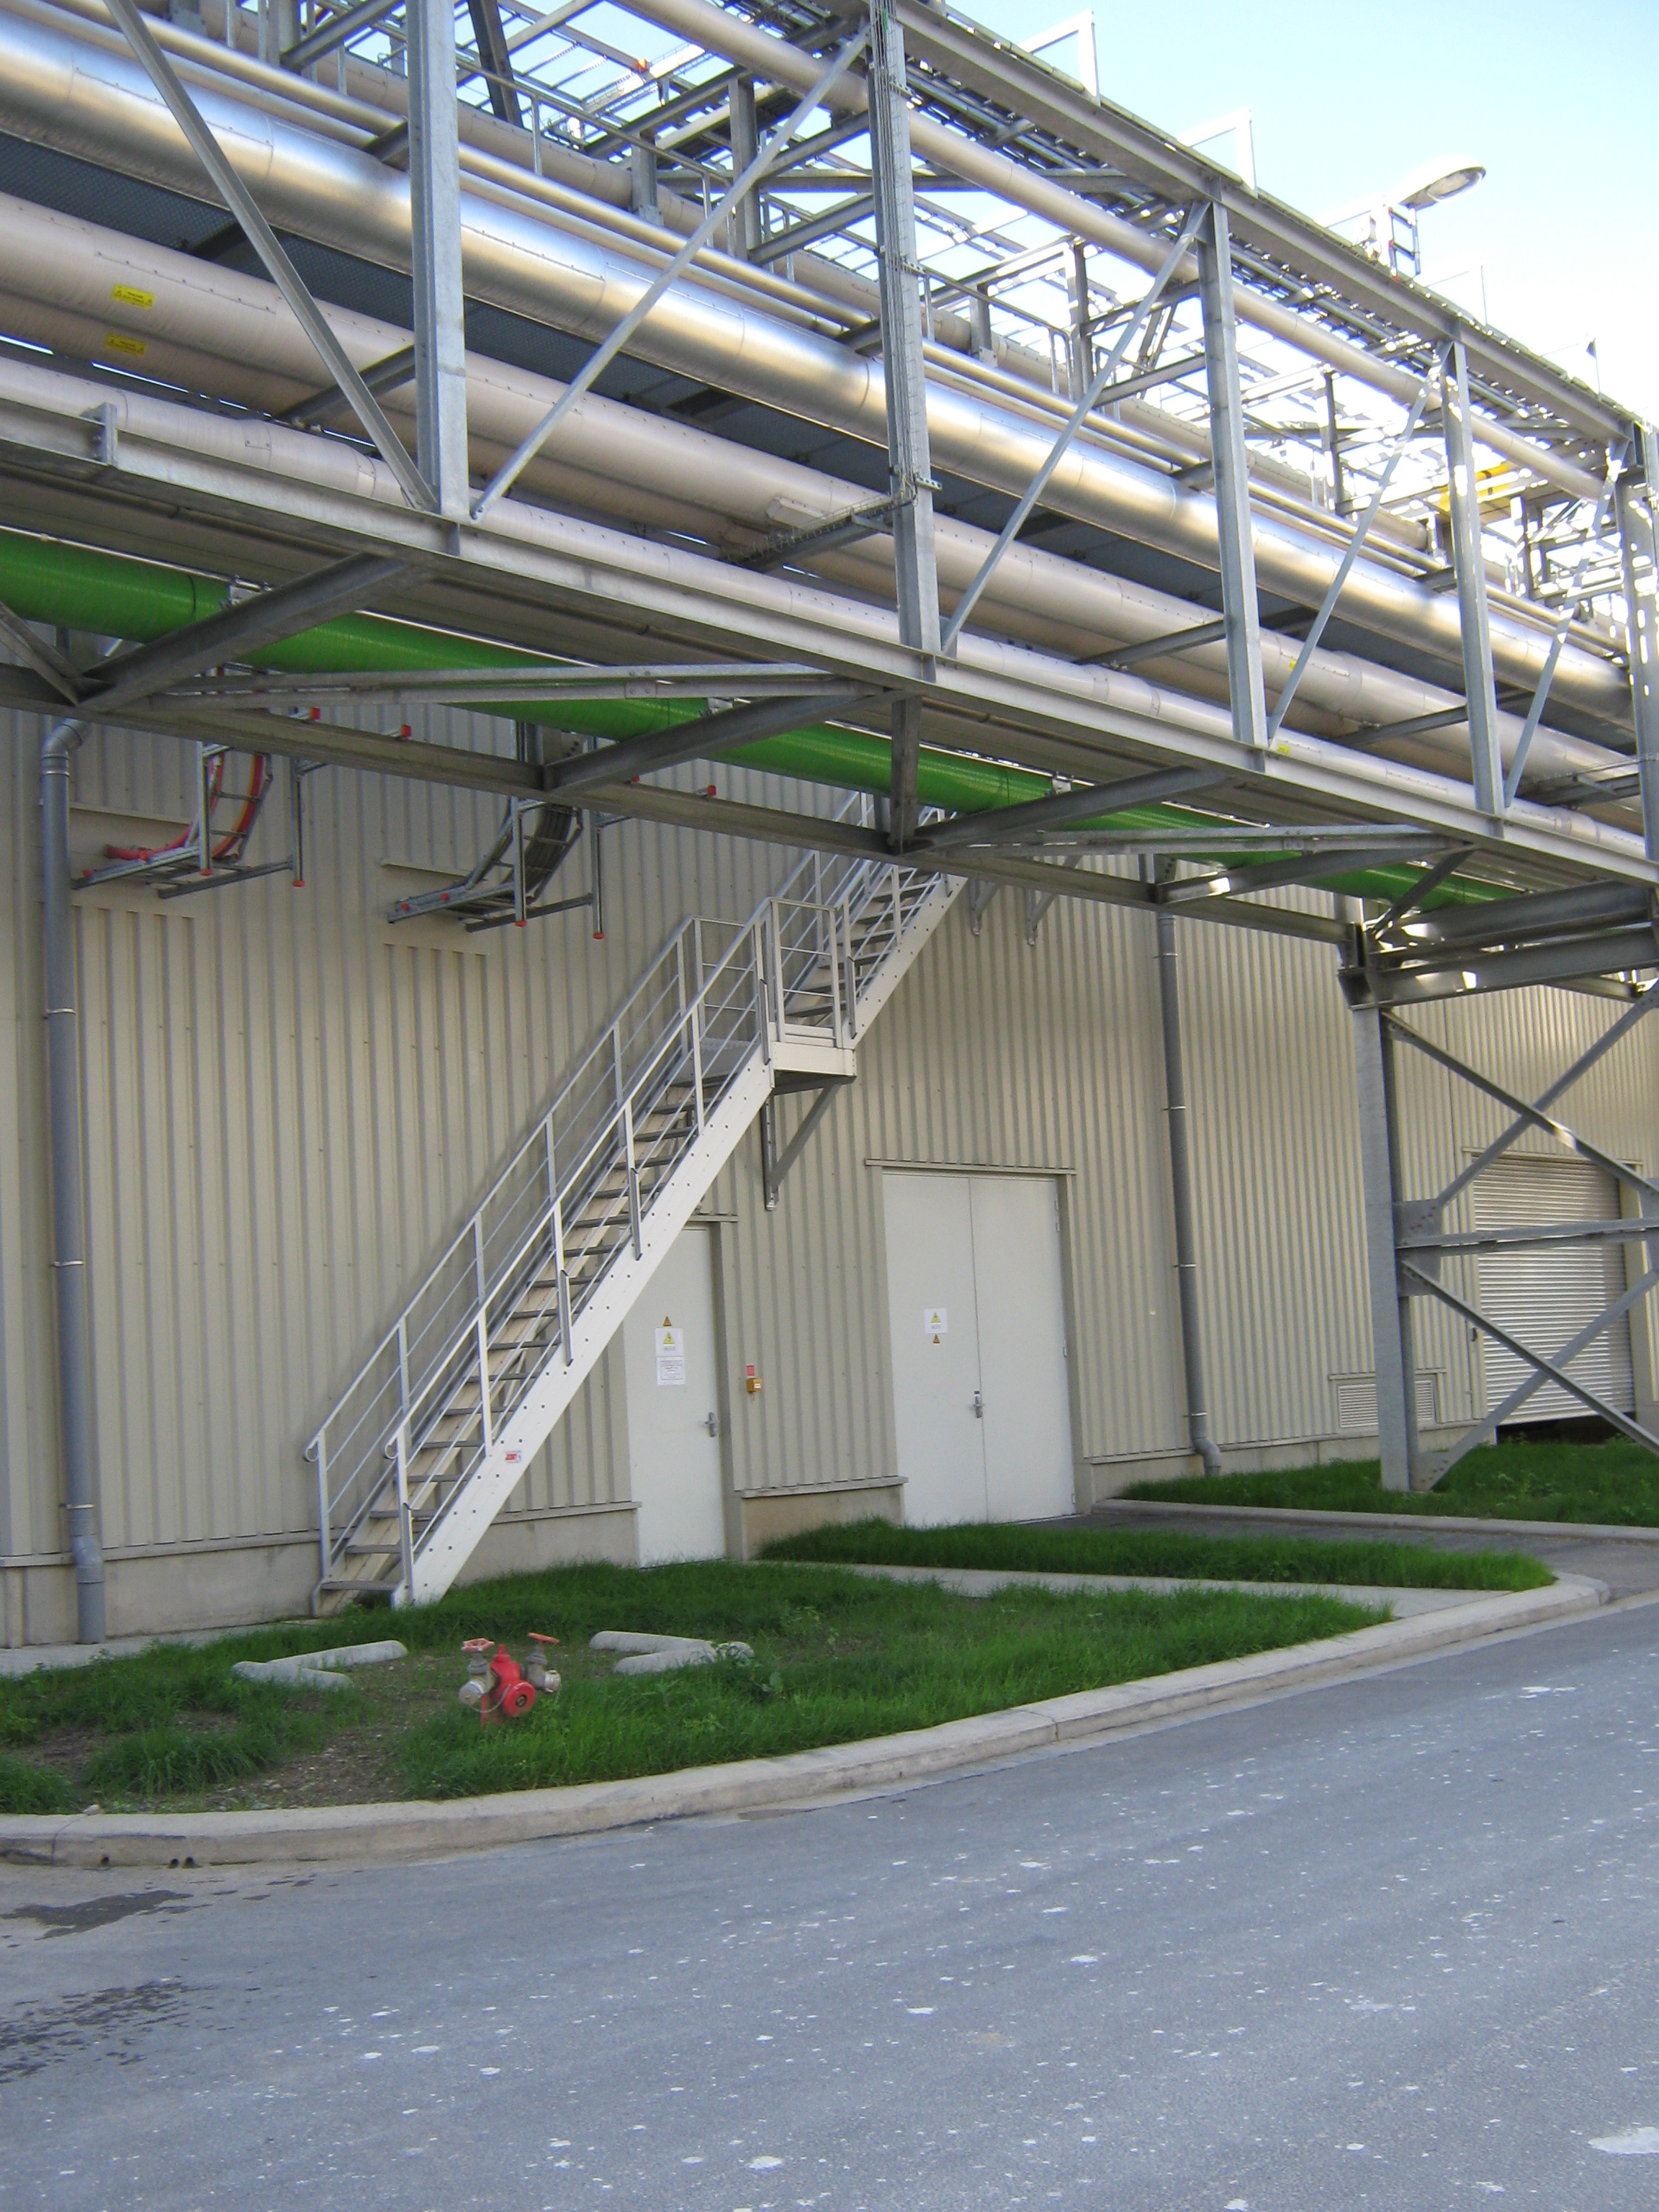 Industrial stairs for piping access